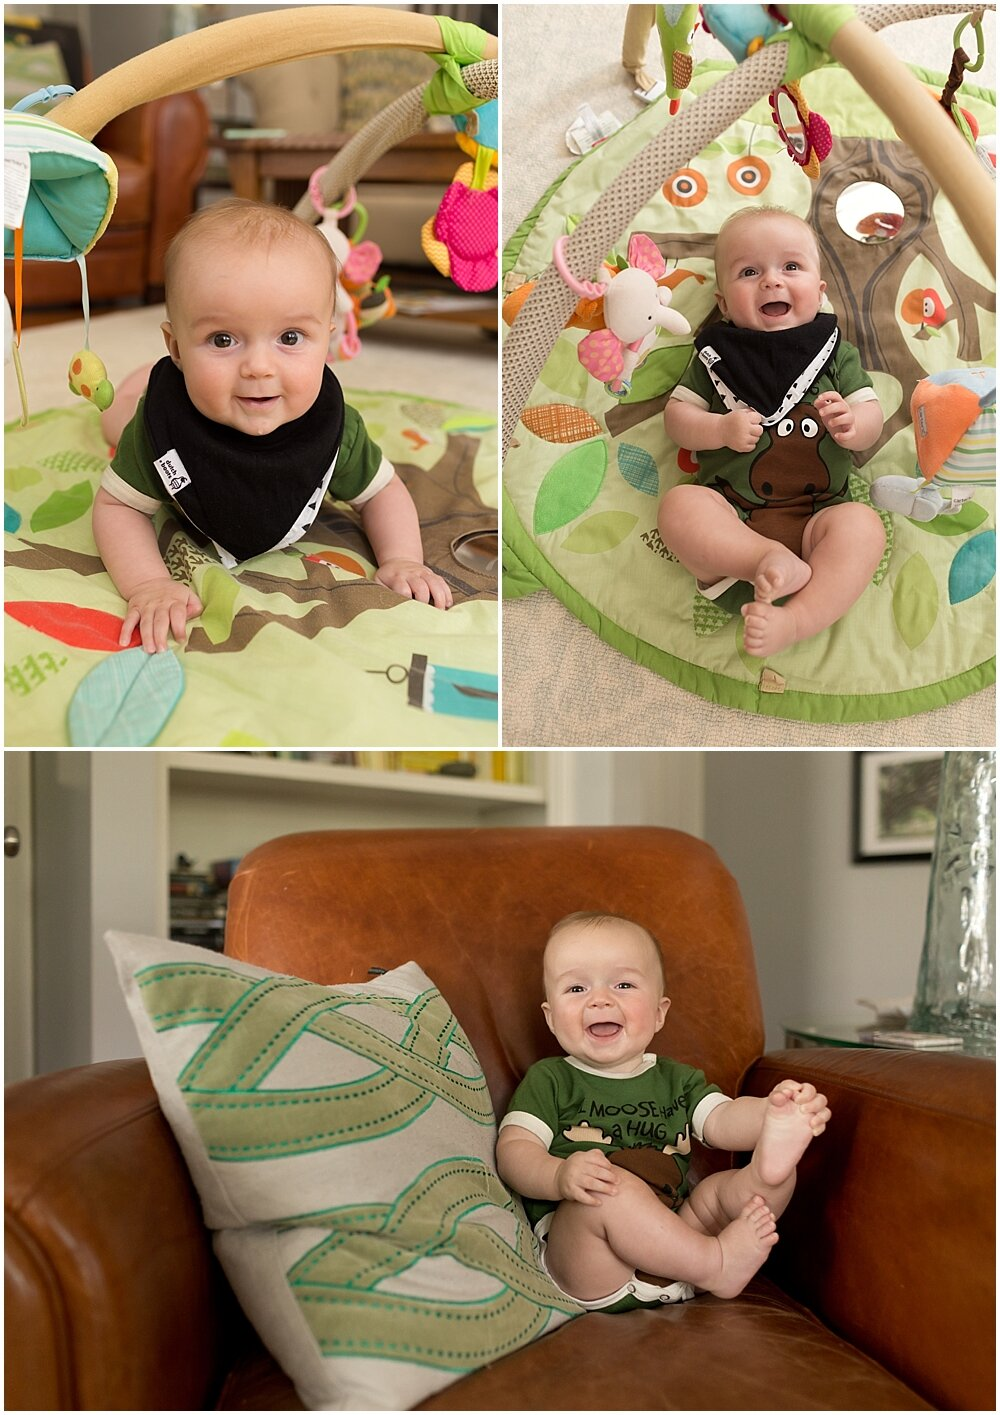 5-month old baby boy playing in living room